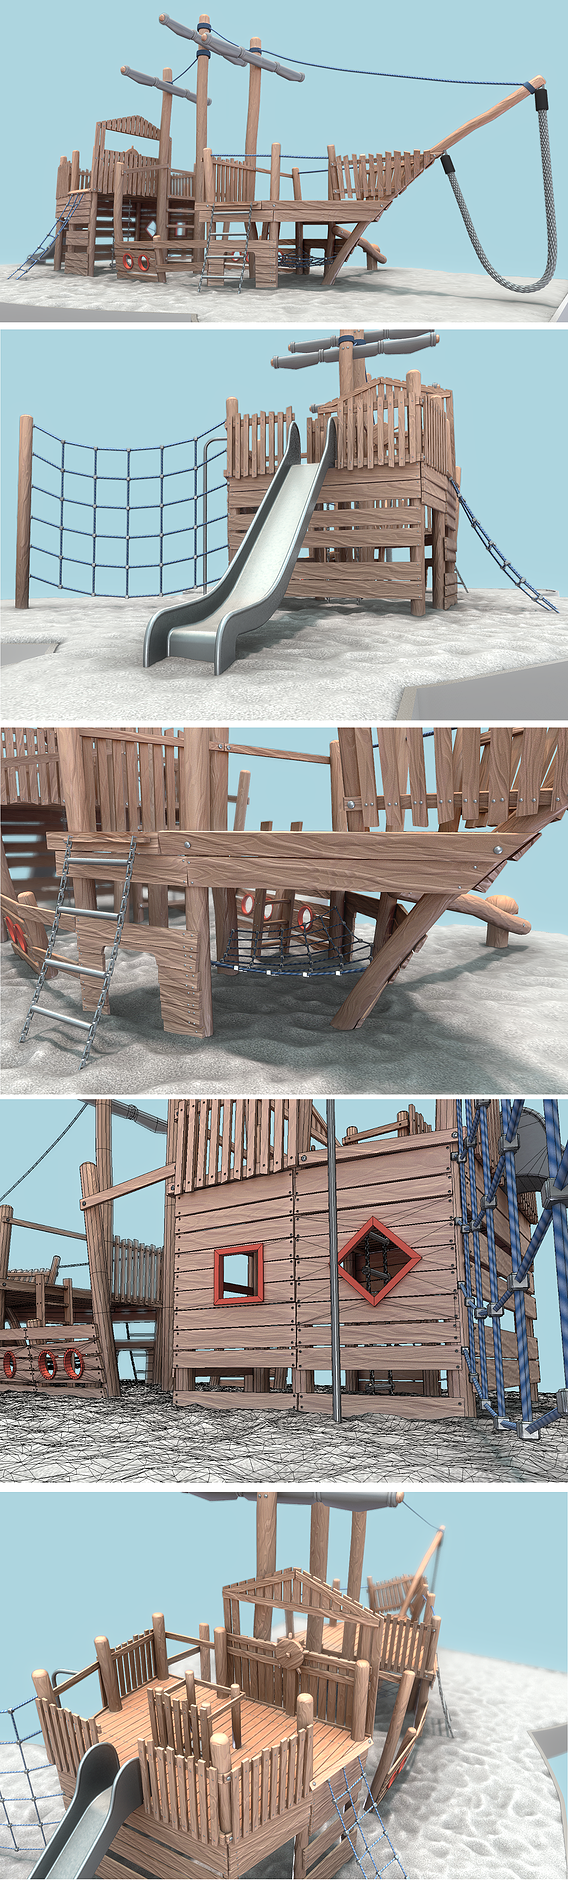 Playground Wood Ship - Final Version